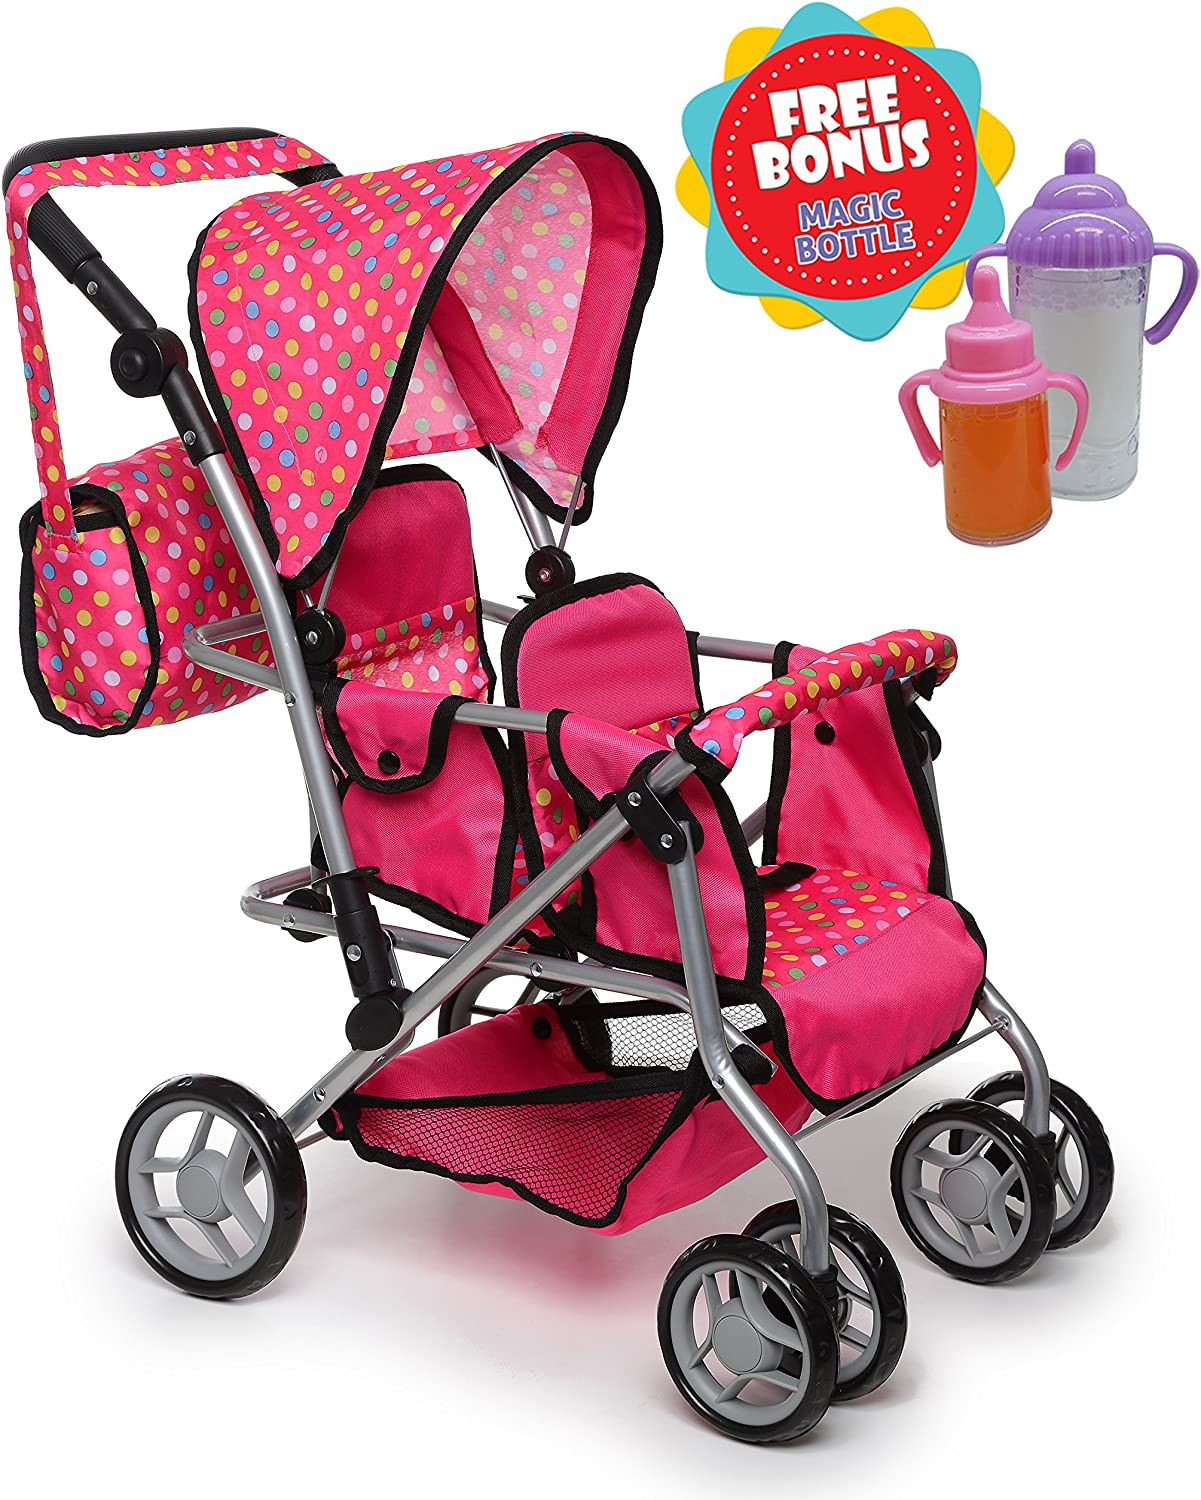 Exquisite Buggy, Twin Doll Stroller with Diaper Bag and Swivel Wheels & Adjustable Handle - Pink & Polka DOTS Design with 2 Free Magic Bottles